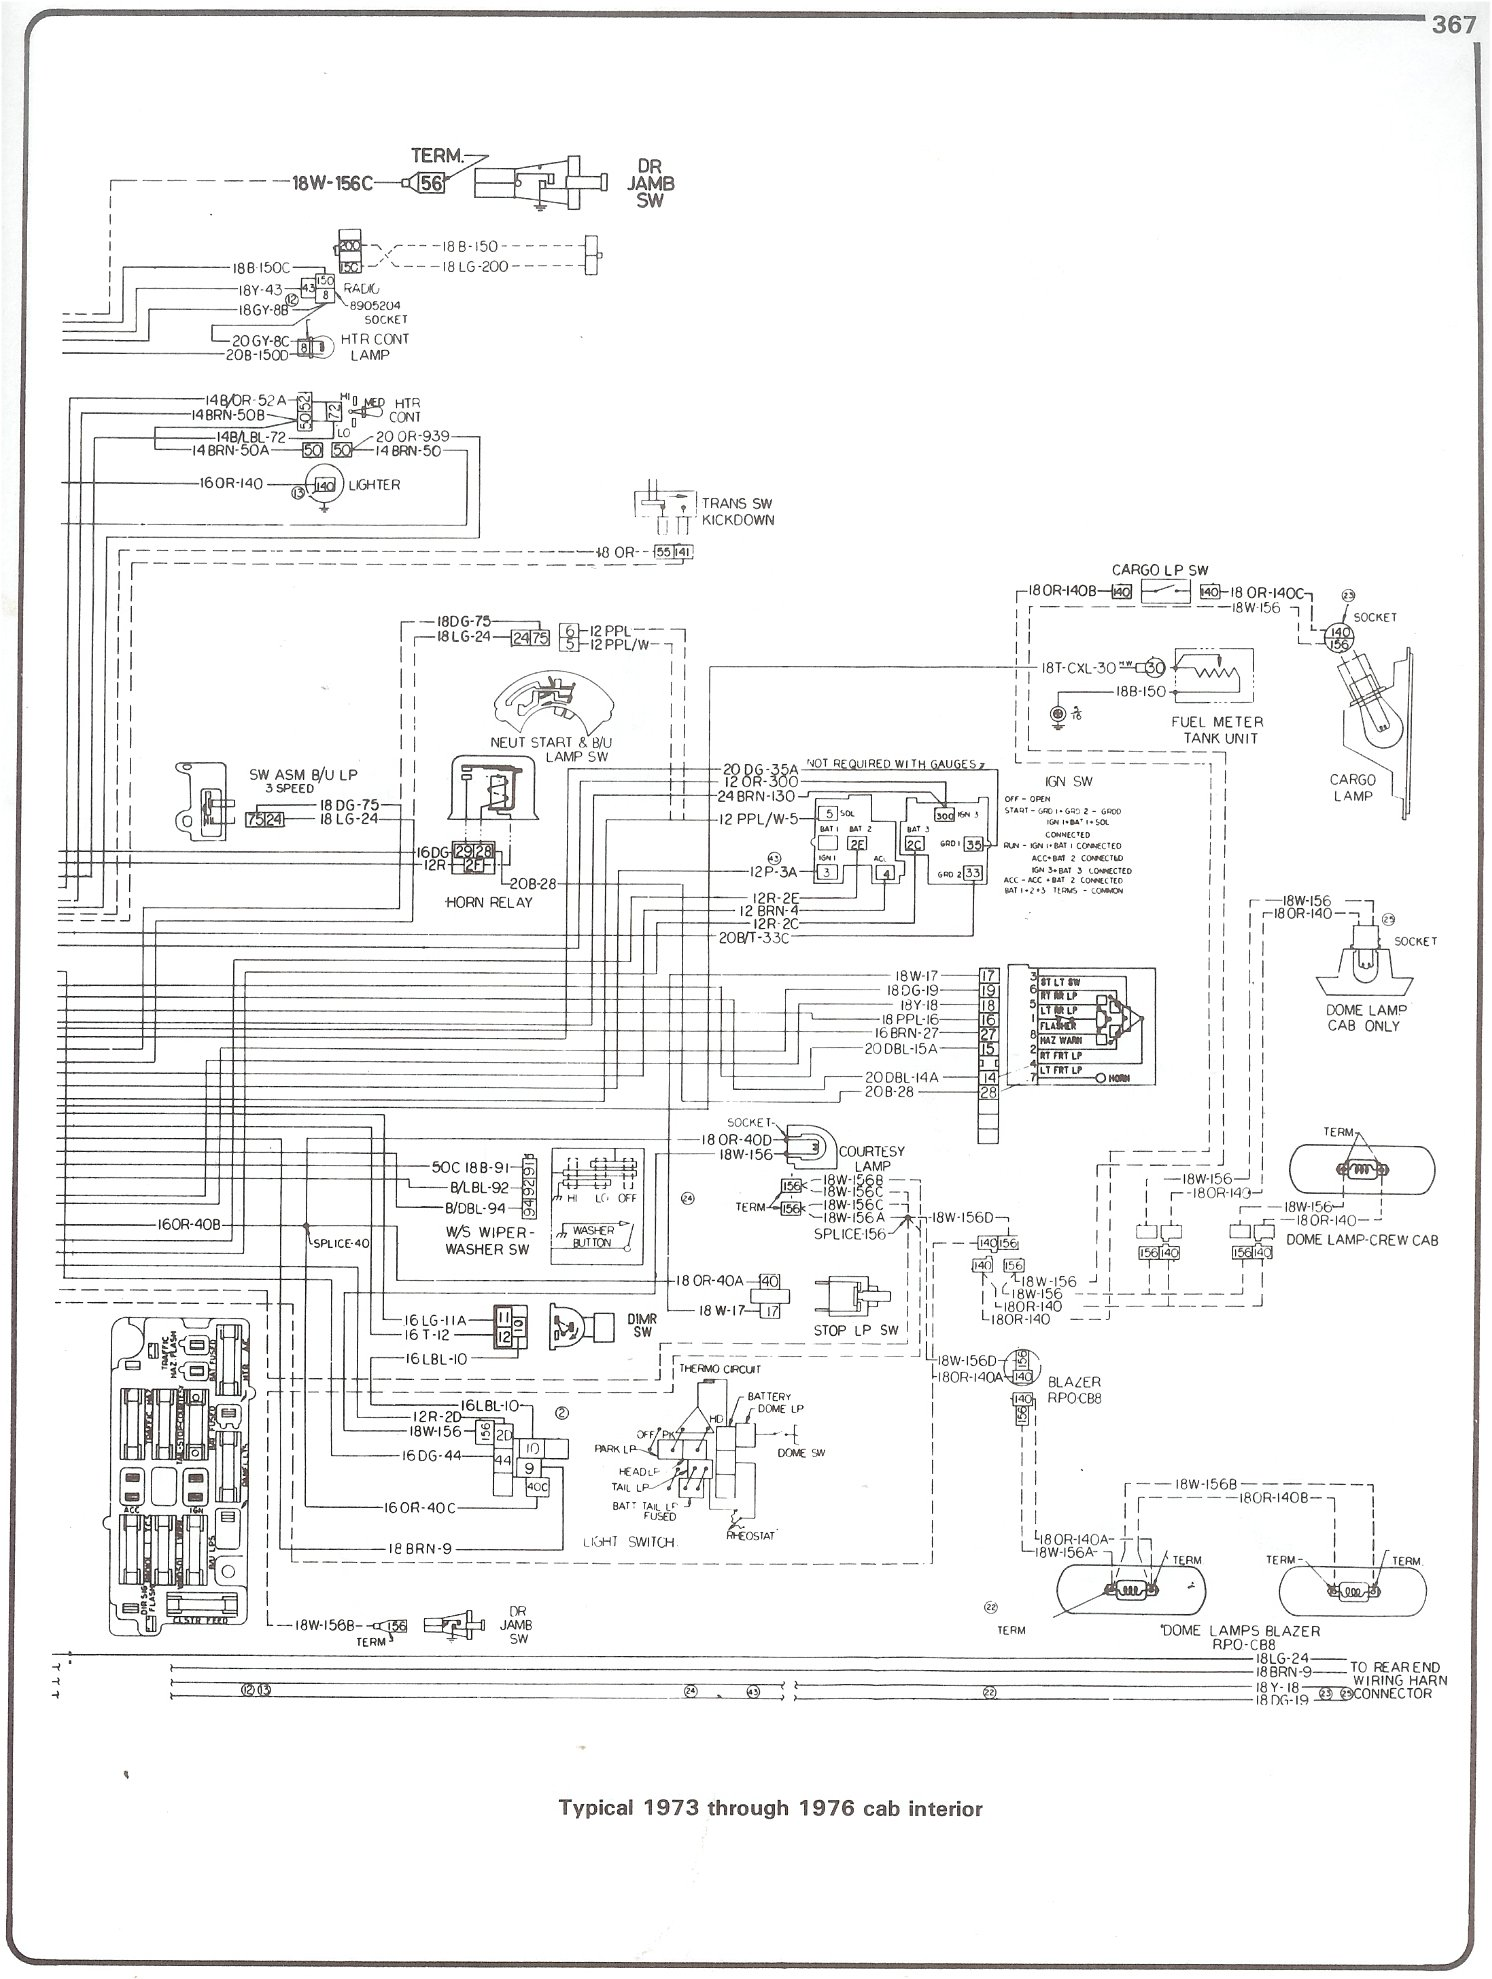 Complete 7387 Wiring Diagrams – Dodge Rv Wiring Diagram